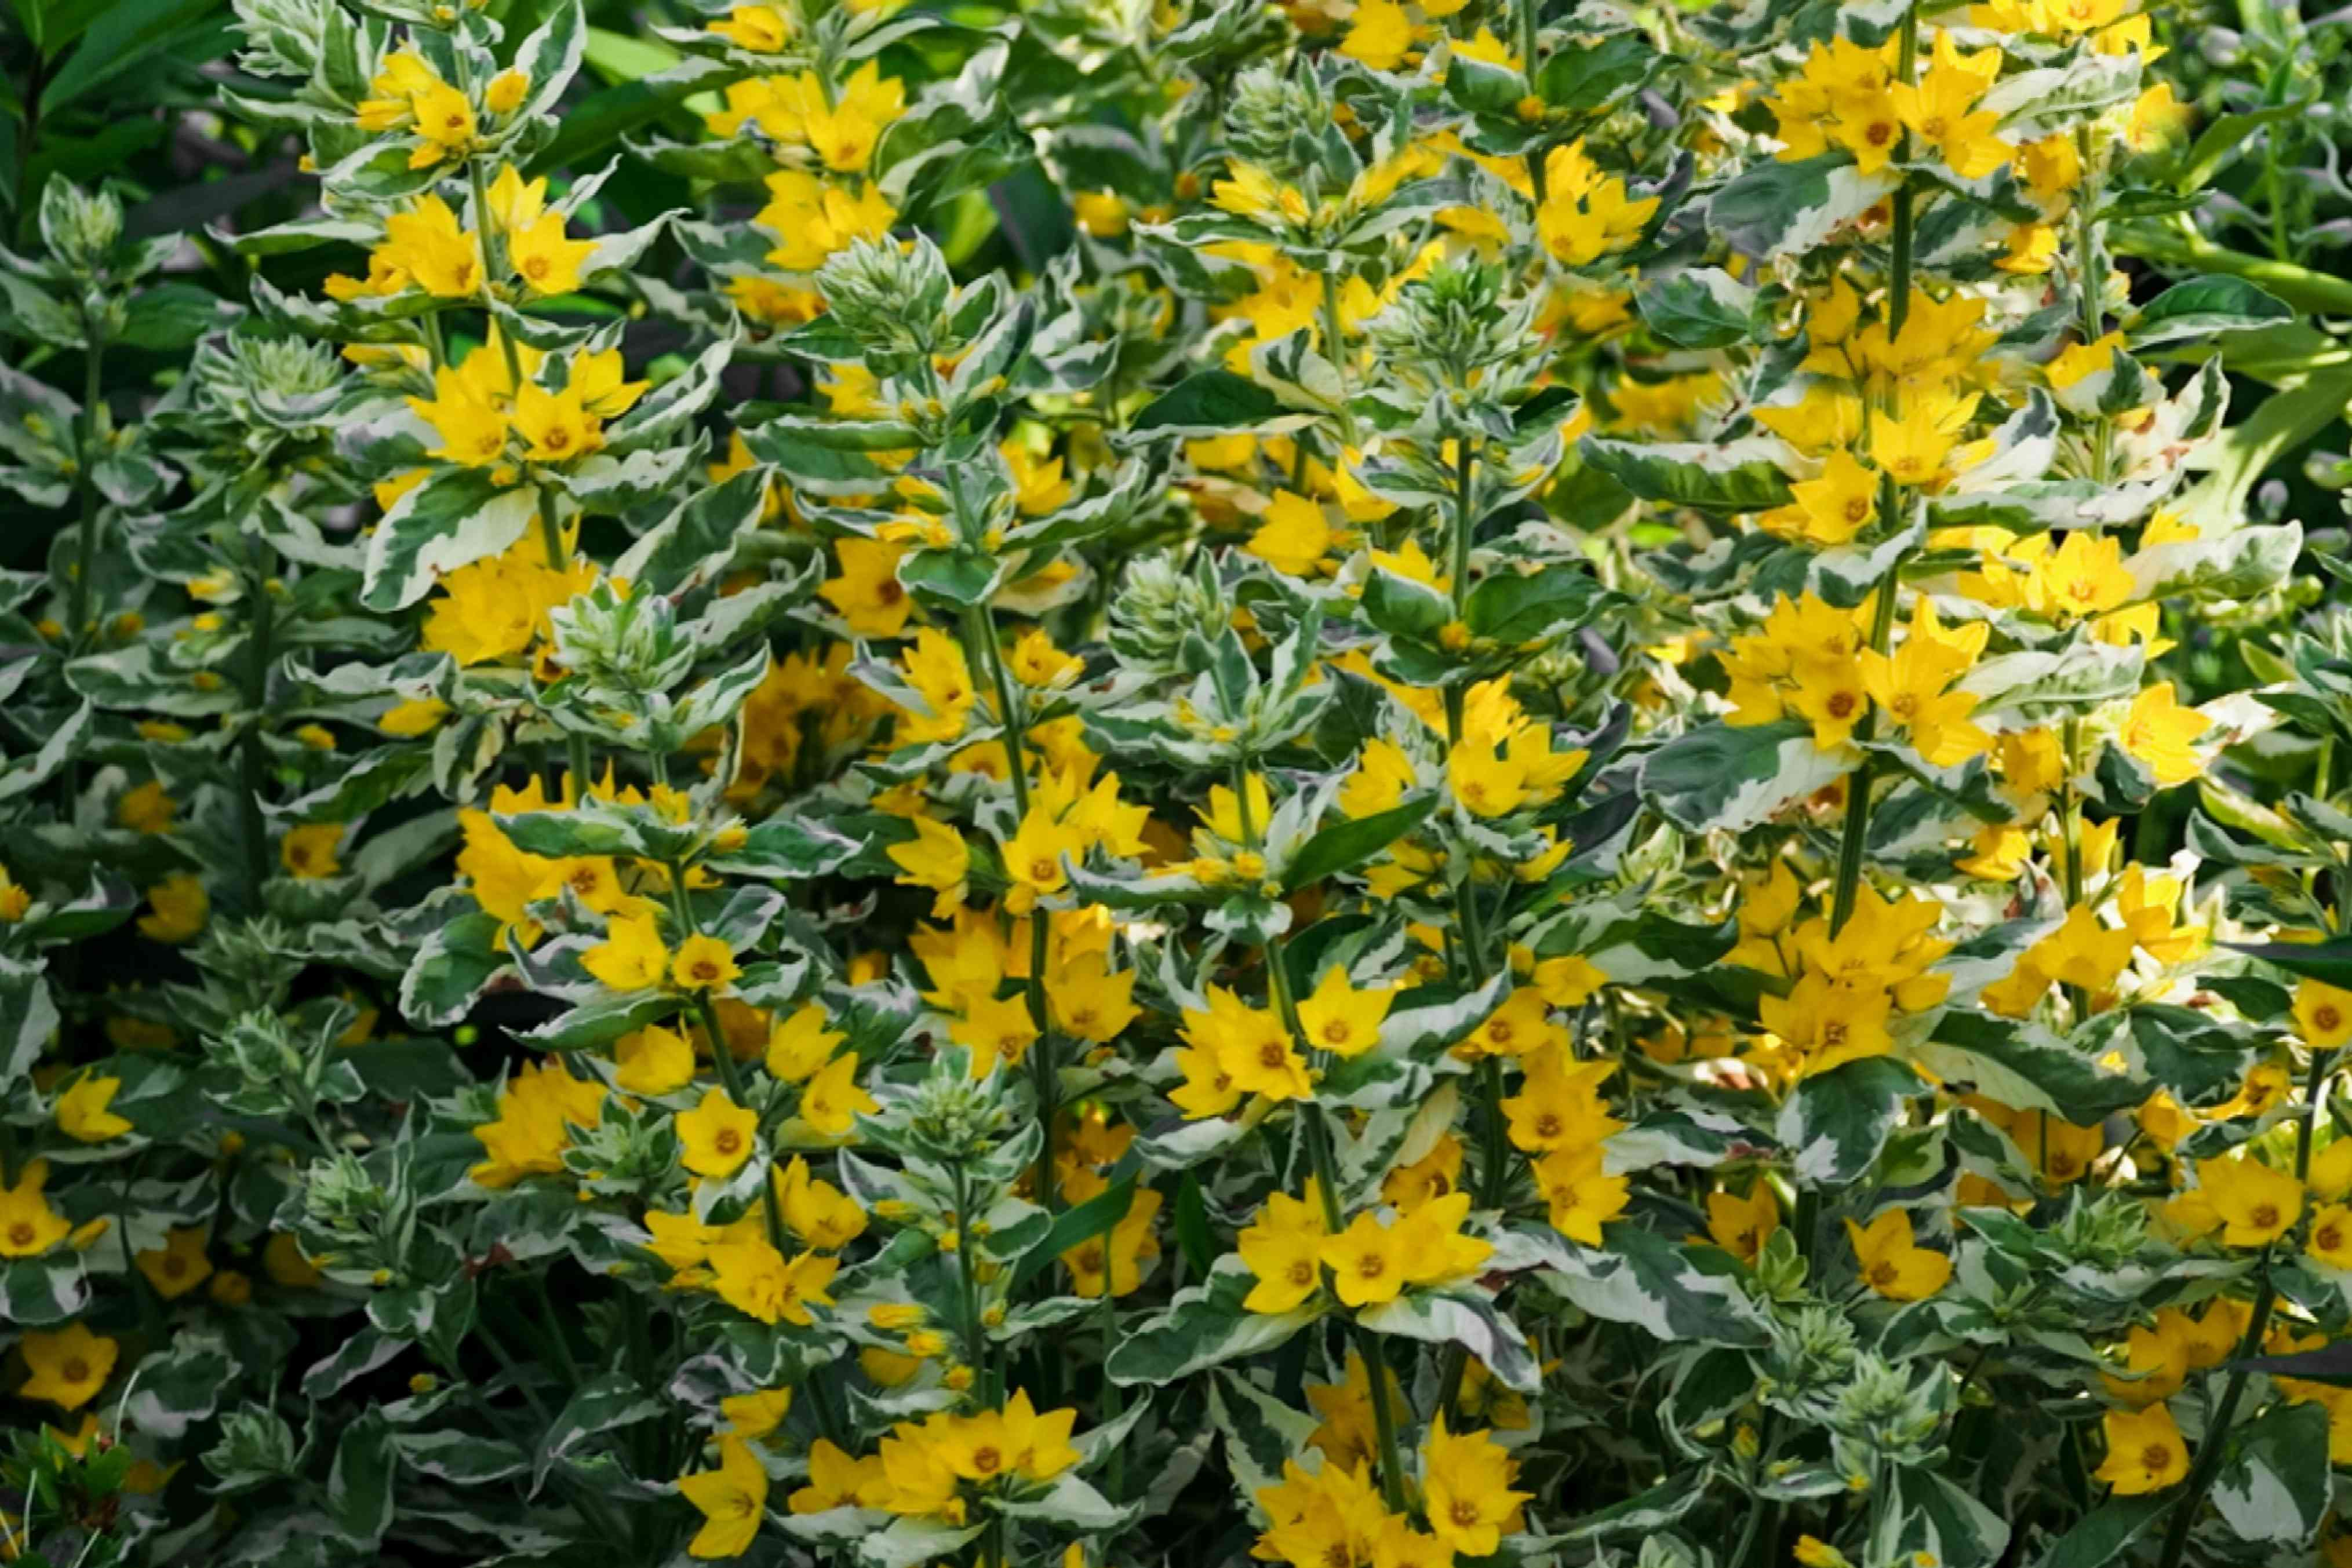 Variegated lysimachia plants with tall thin stems and yellow flowers